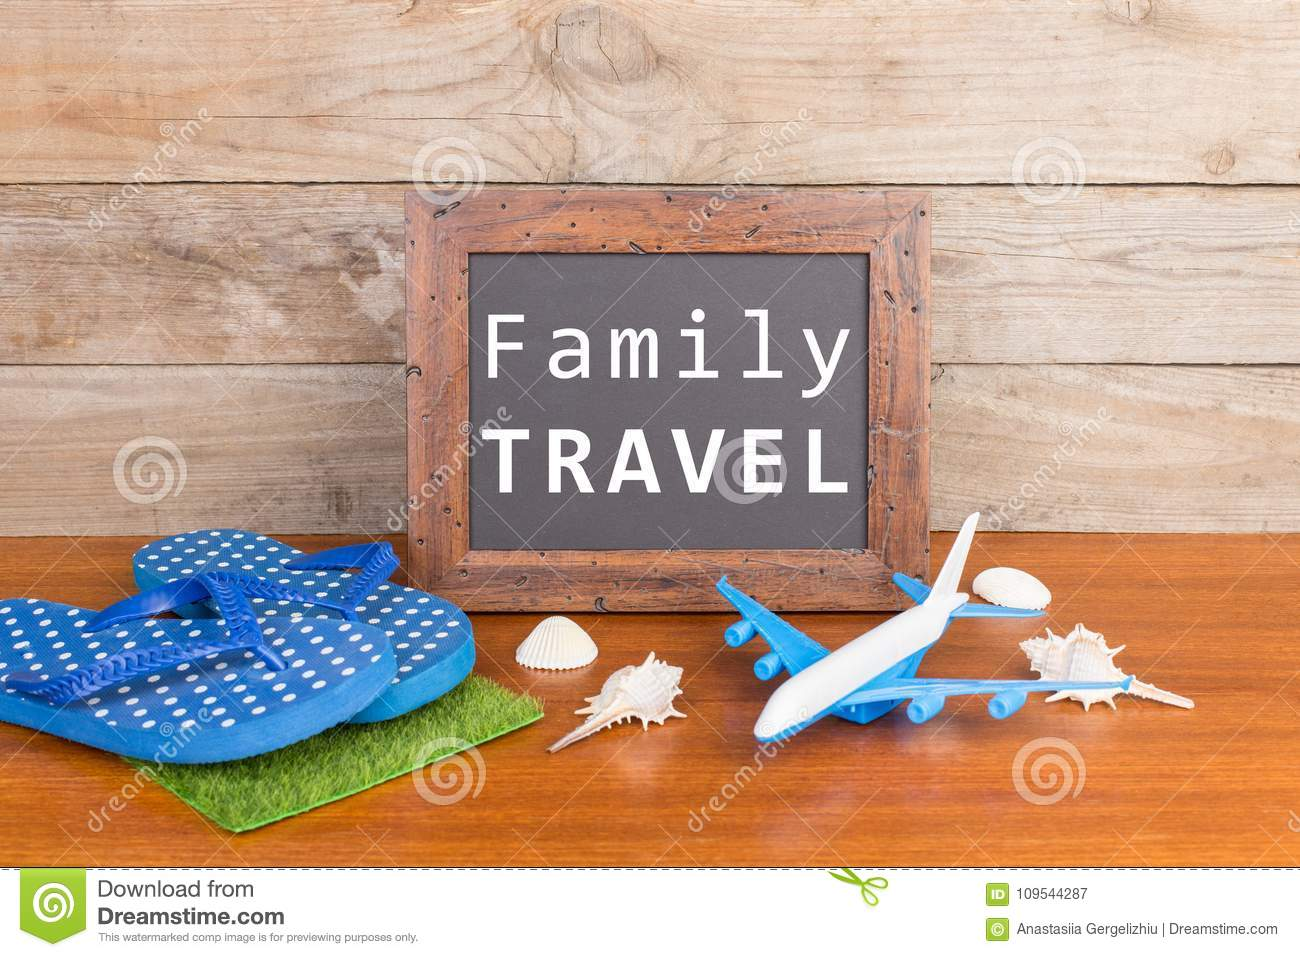 blackboard with text & x22;Family travel& x22;, plane, flip flops, seashells on brown wooden background